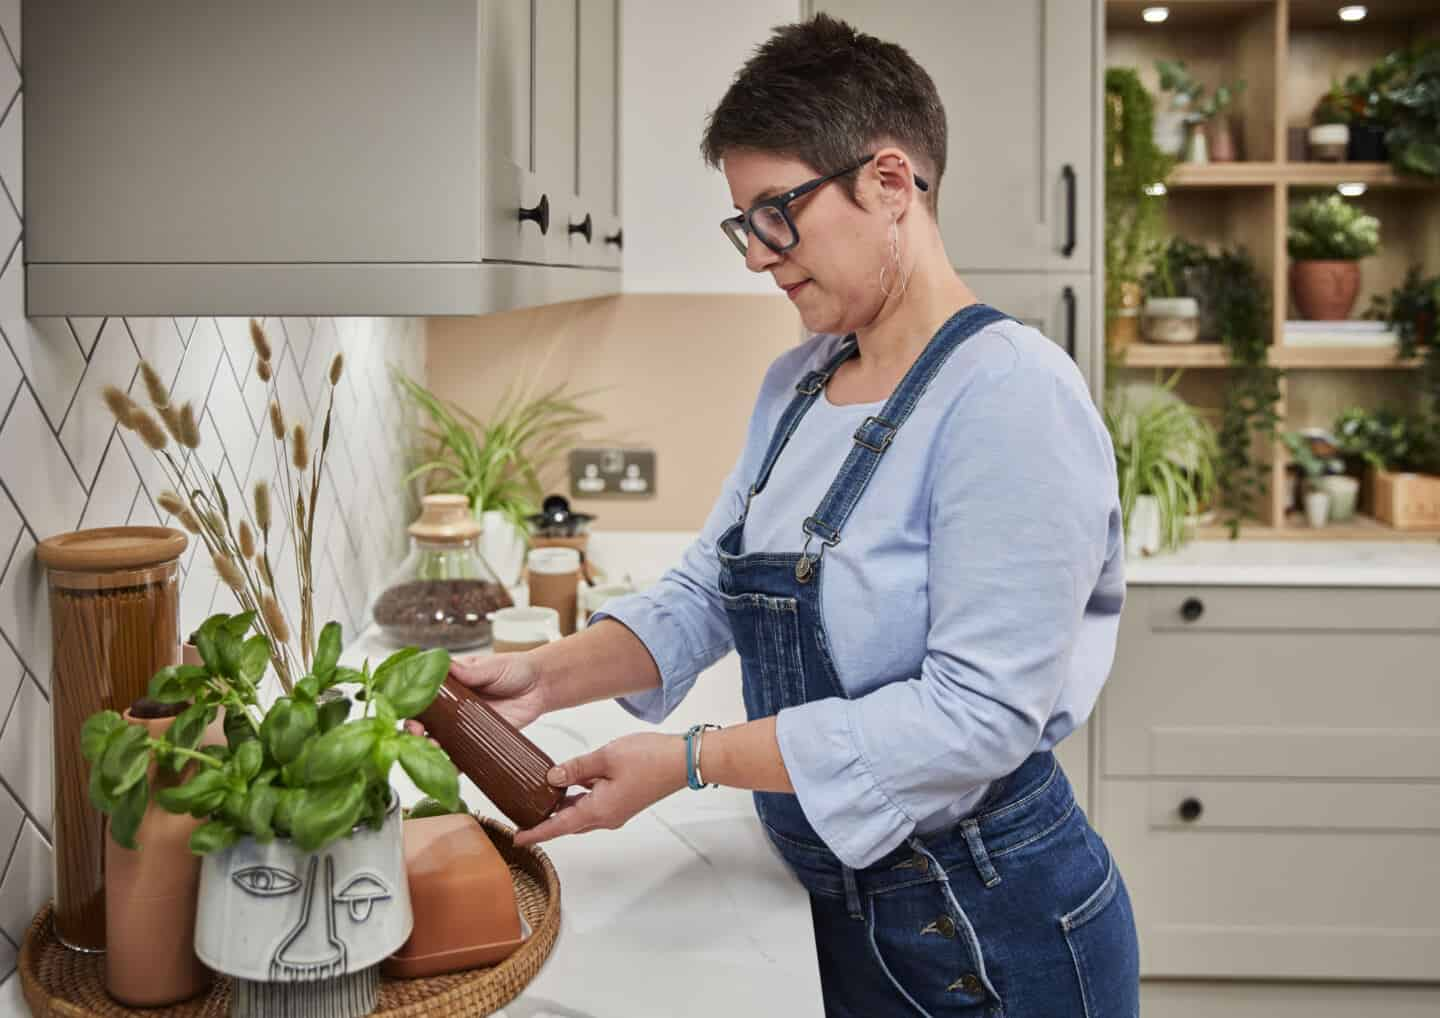 Biophilic kitchen designs provide a multi-sensory experience through natural materials and textures. Here Sblogger Stacey Sheppard arranges kitchen accessories on a marble effect worktop.